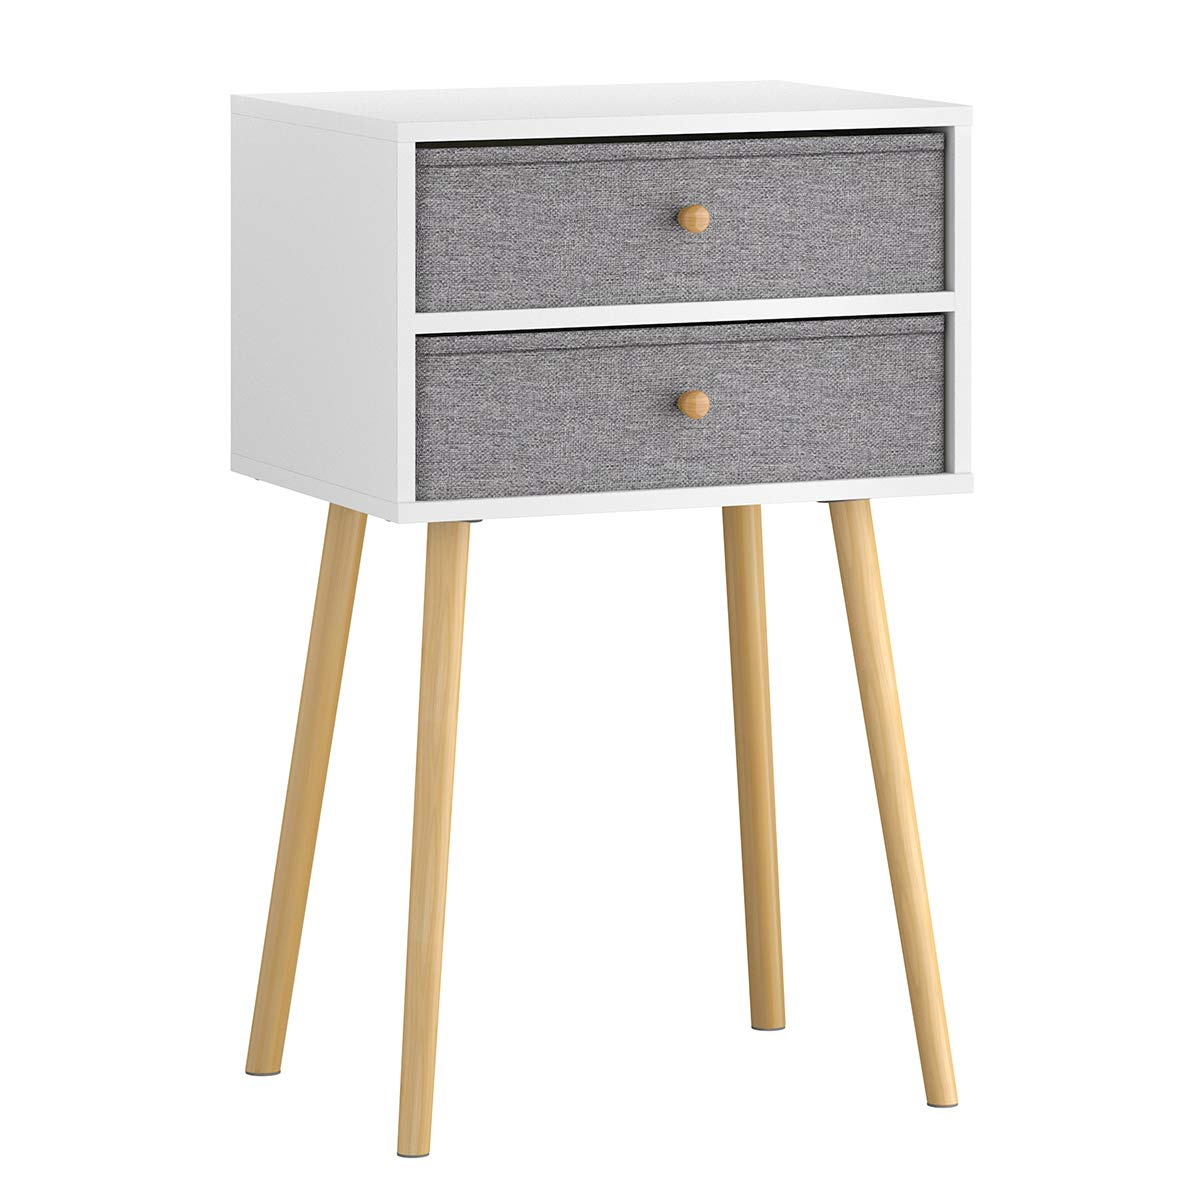 LANGRIA Bedside Table Nightstand End Table with Fabric Storage Drawer